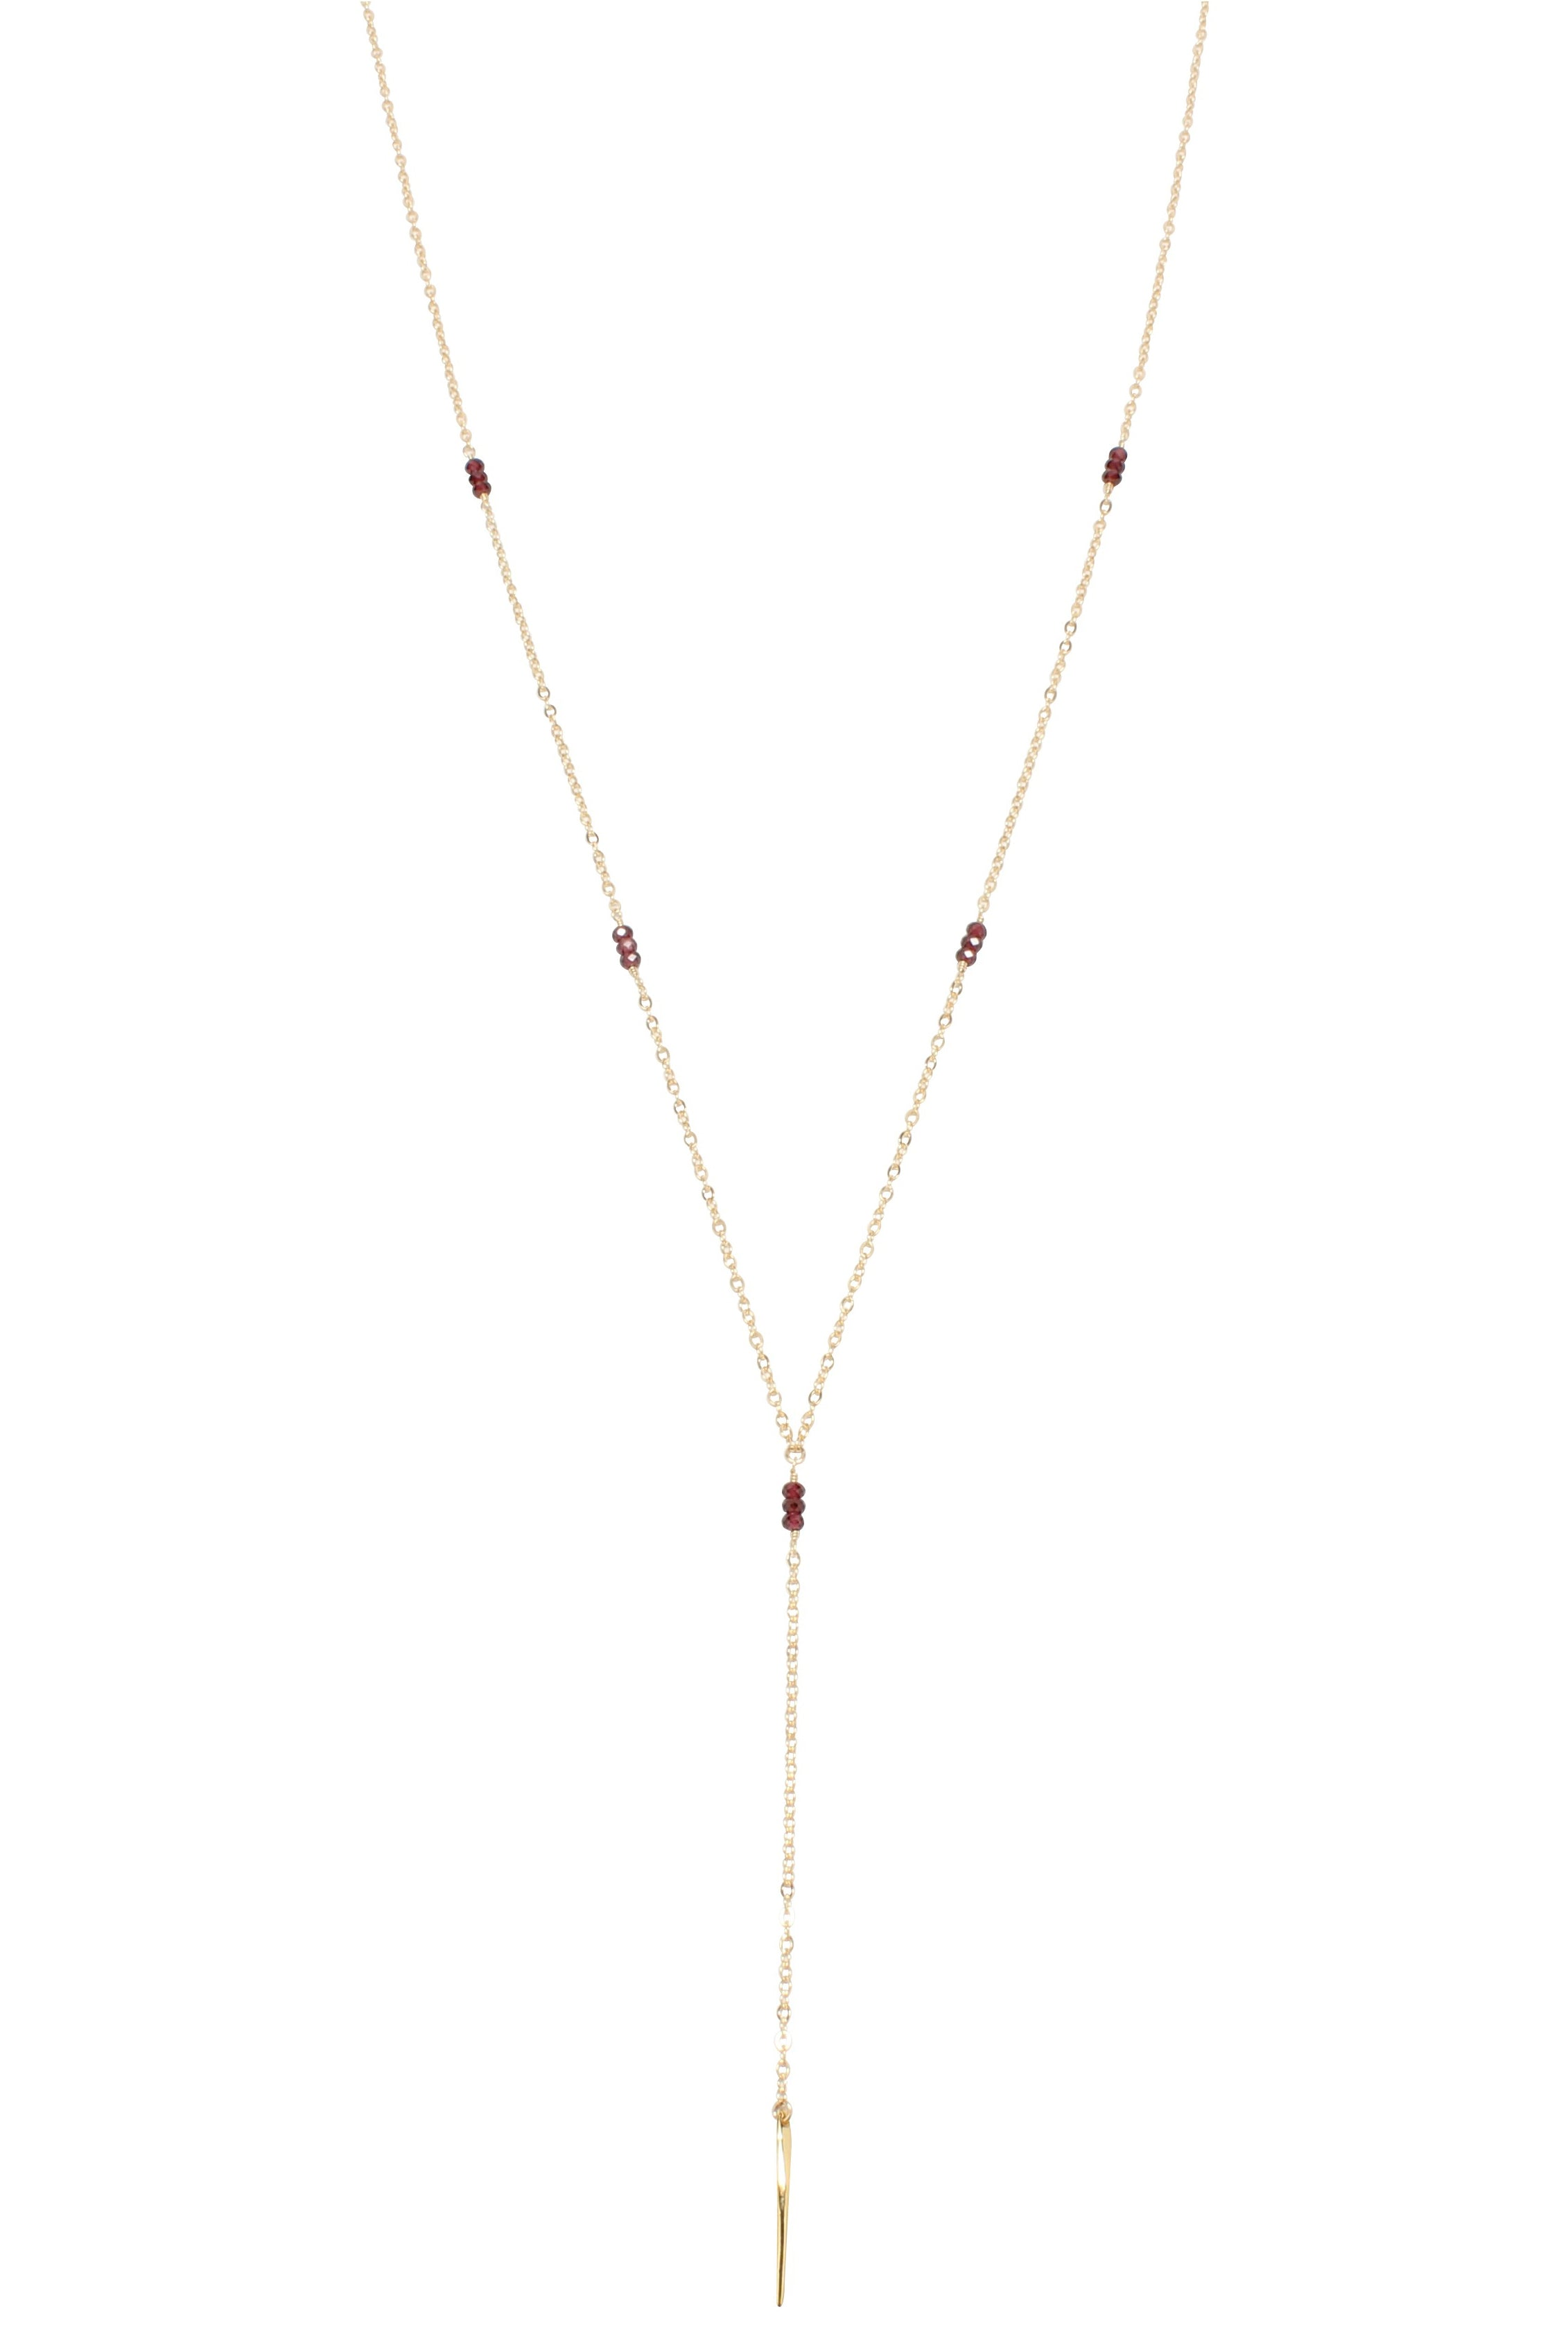 Melody Long Lariat Necklace Garnet Gold Brooke Landon Jewelry